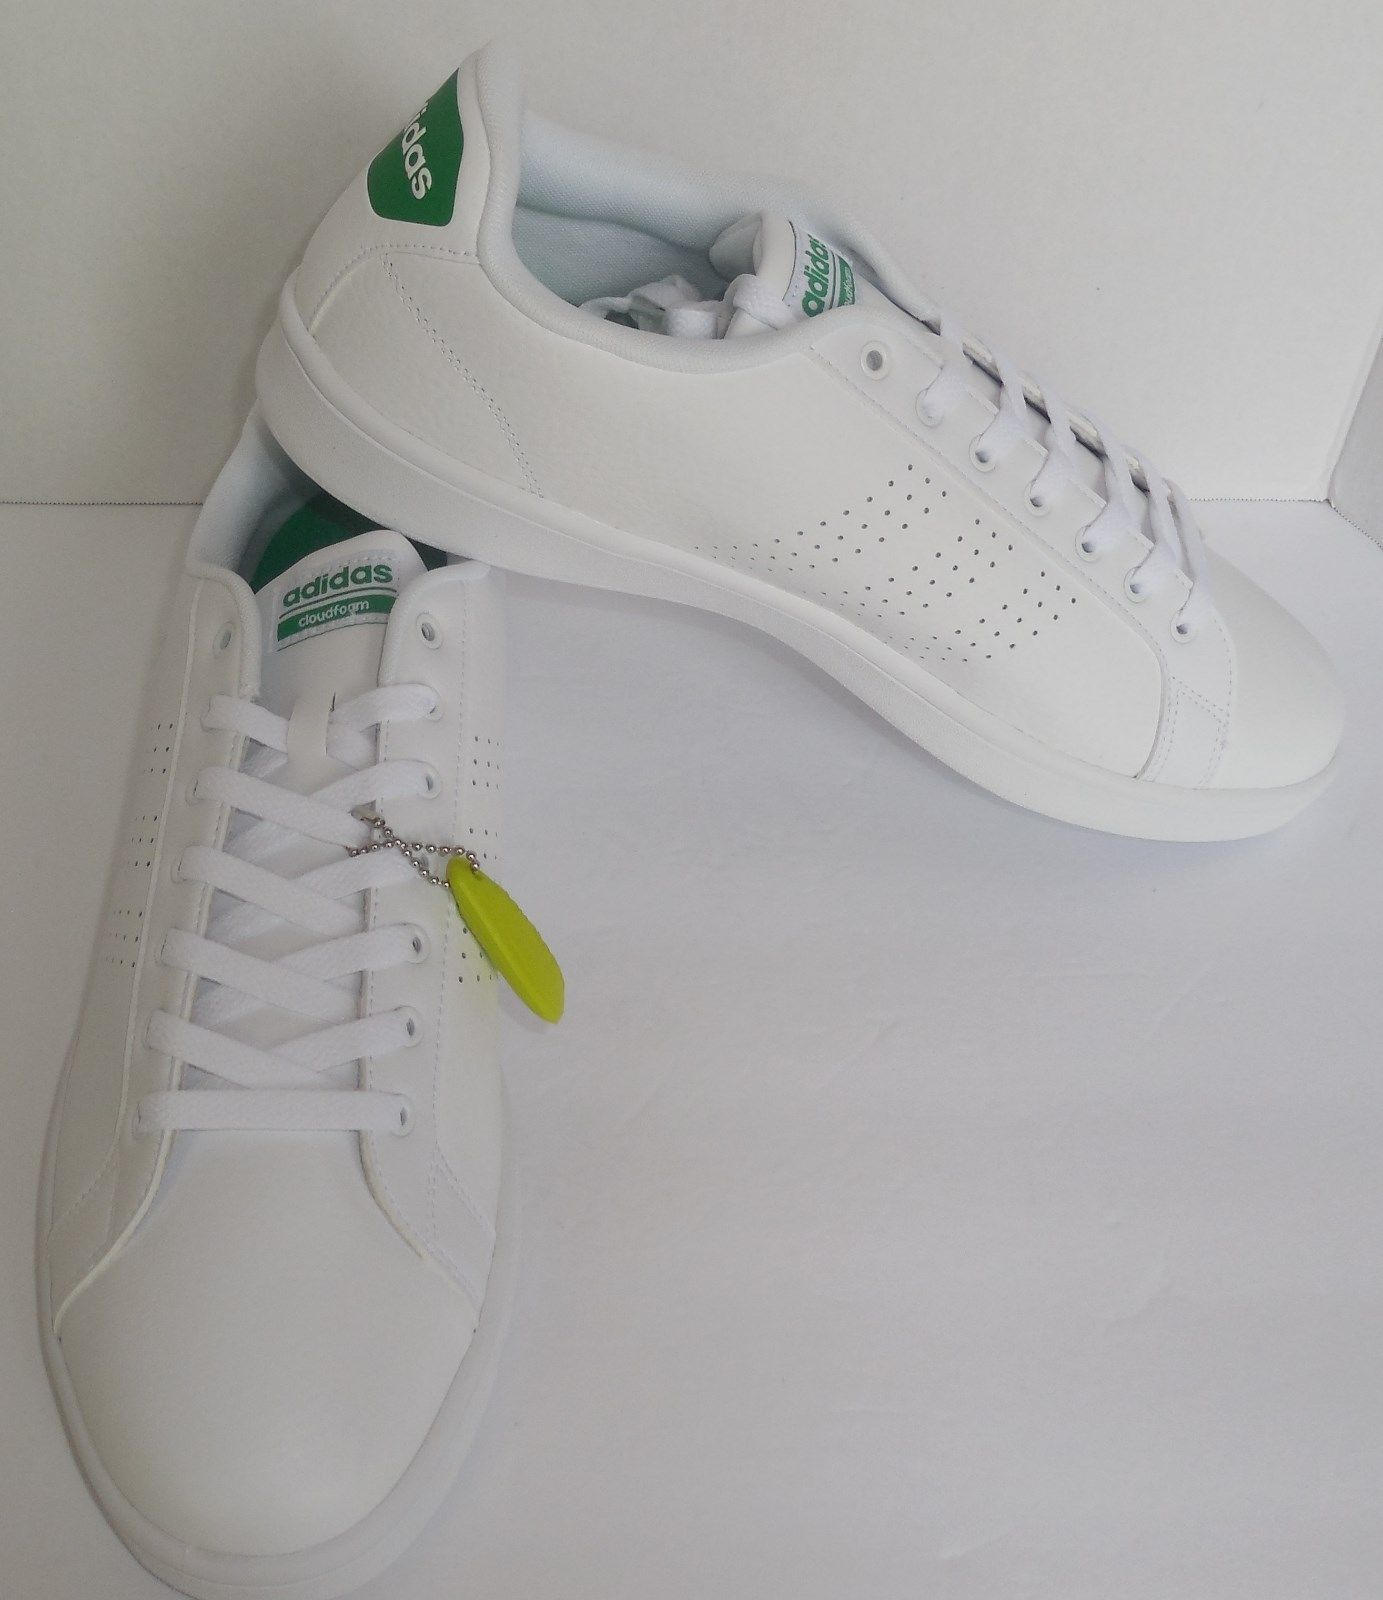 release date 59901 6d944 57. 57. Previous. Adidas Neo Mens 13 Cloudfoam Advantage Clean White Green Sneakers  Shoes AW3914